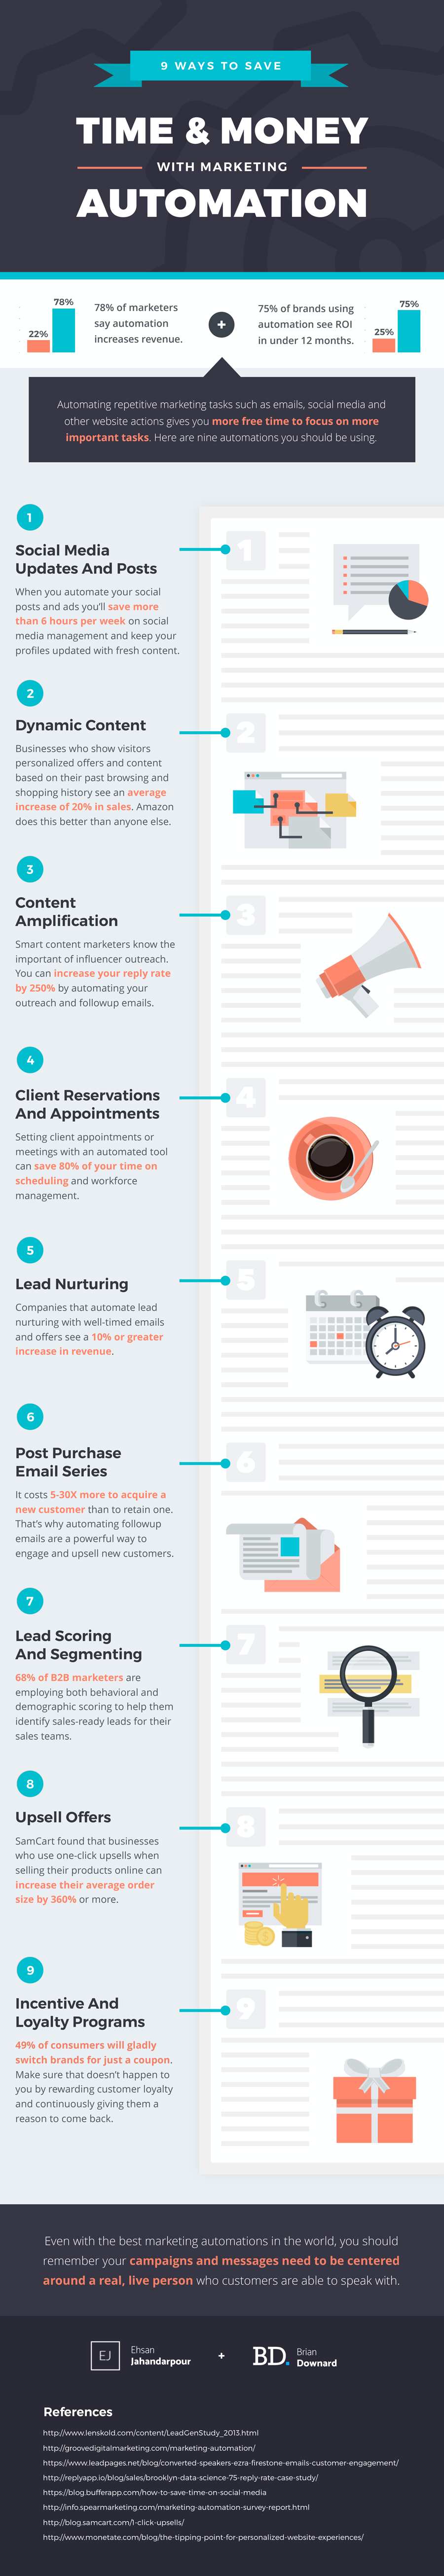 Infographic - Marketing Automation